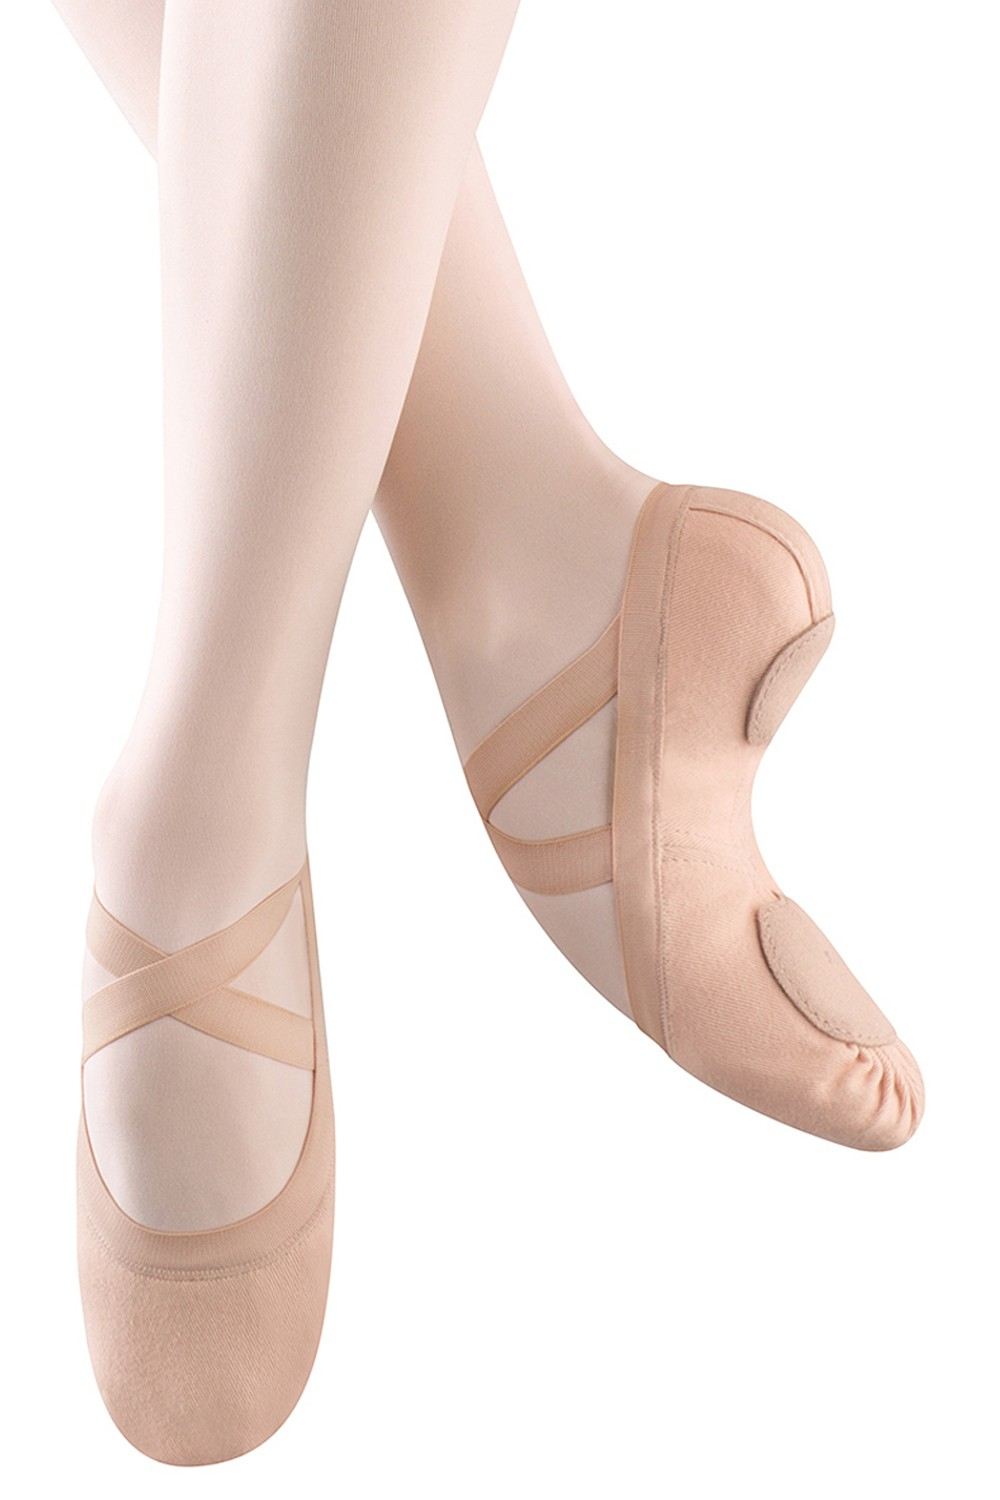 ballet slippers synchrony womenu0027s ballet shoes UNEFPIS